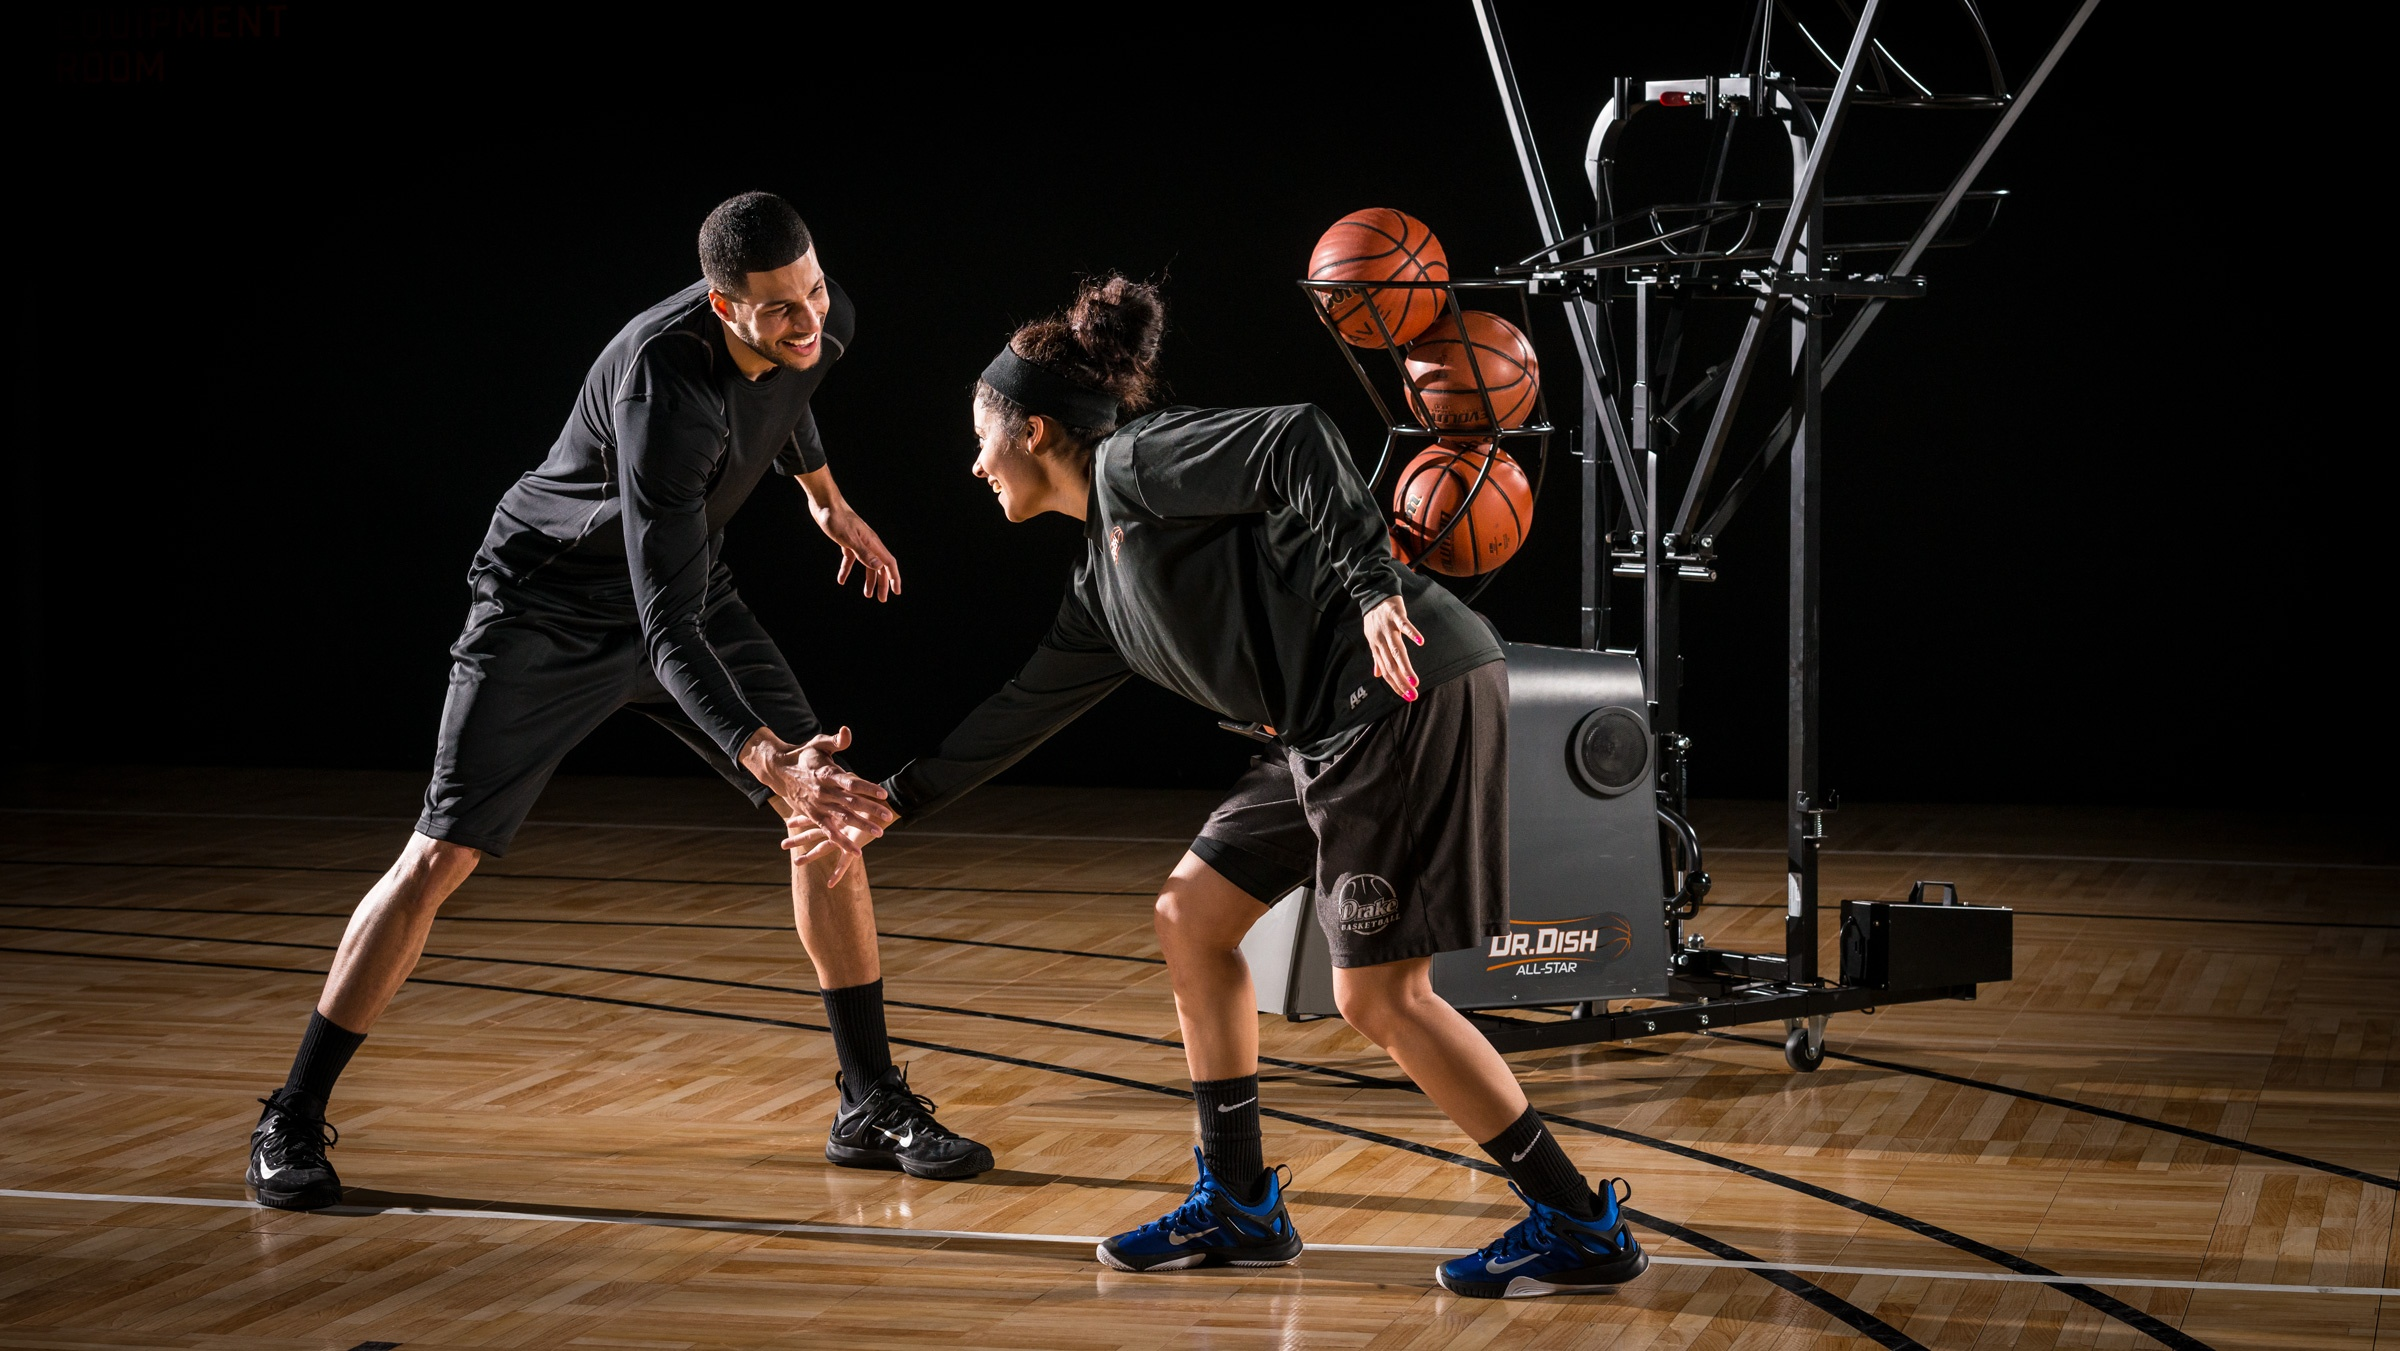 Basketball Shooting Machine - Dr. Dish Excitement